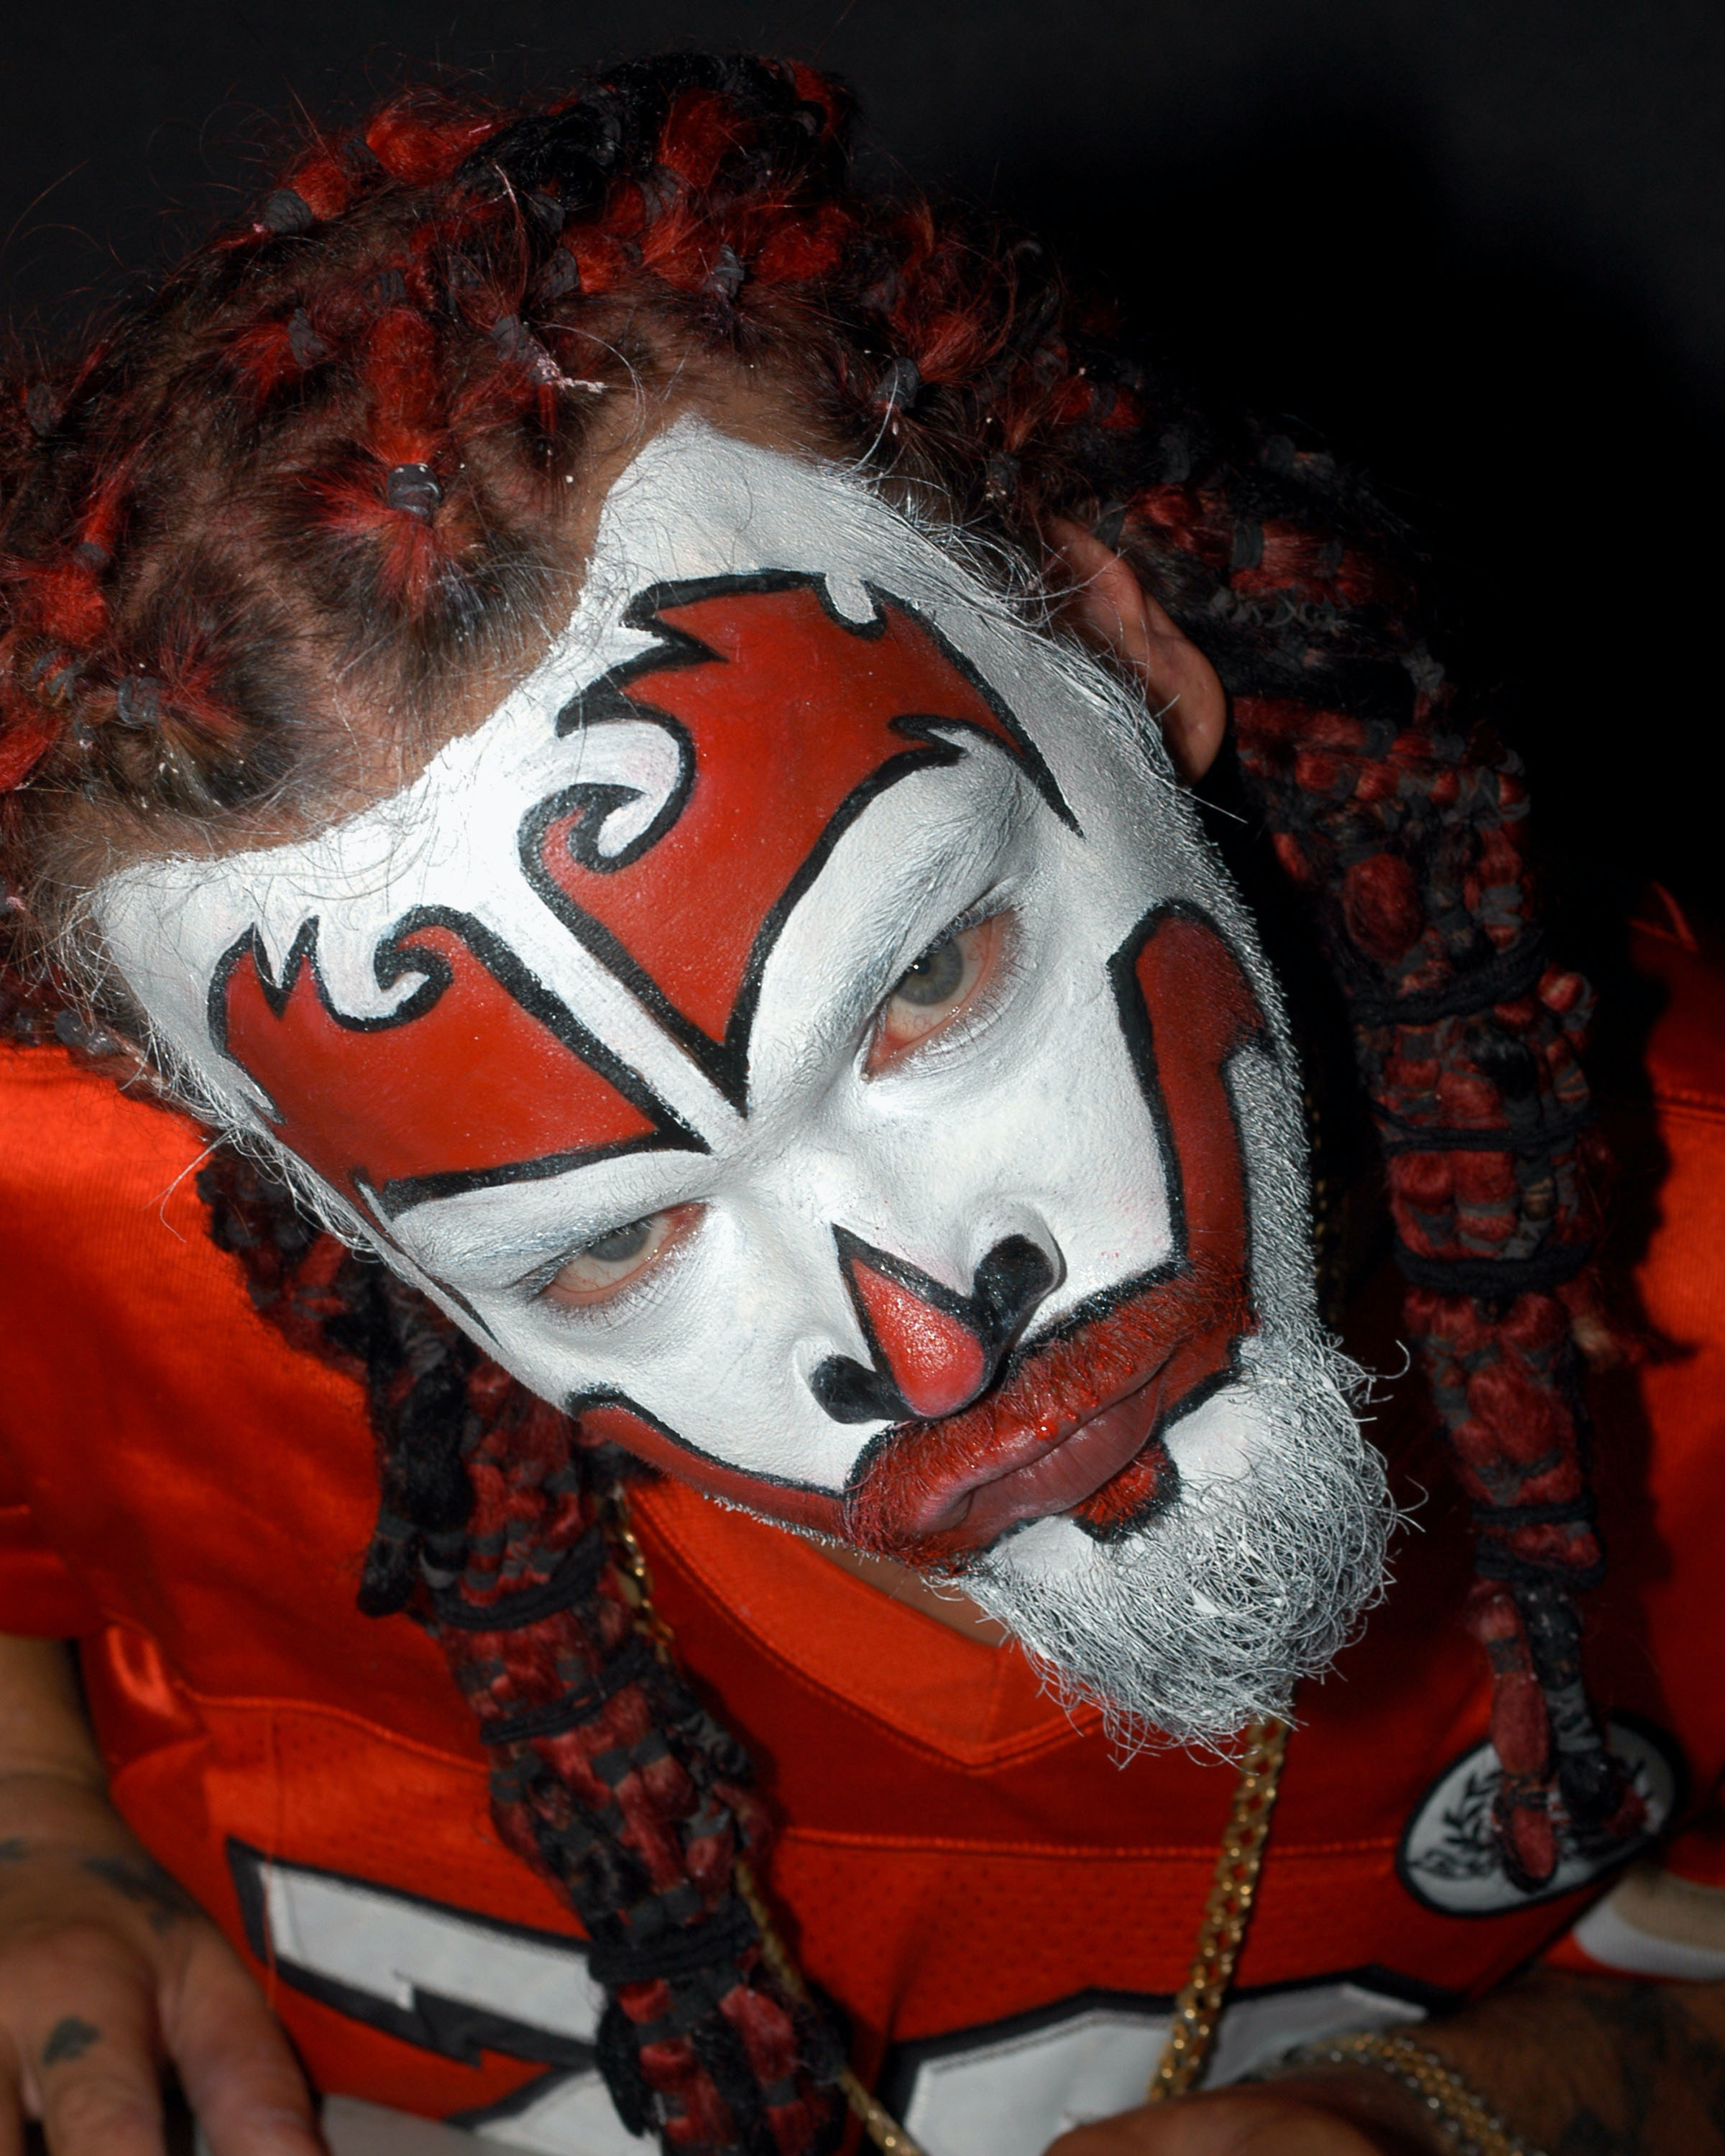 Detroit's Psychopathic Records organizes Insane Clown Posse juggalo protest in Washington DC